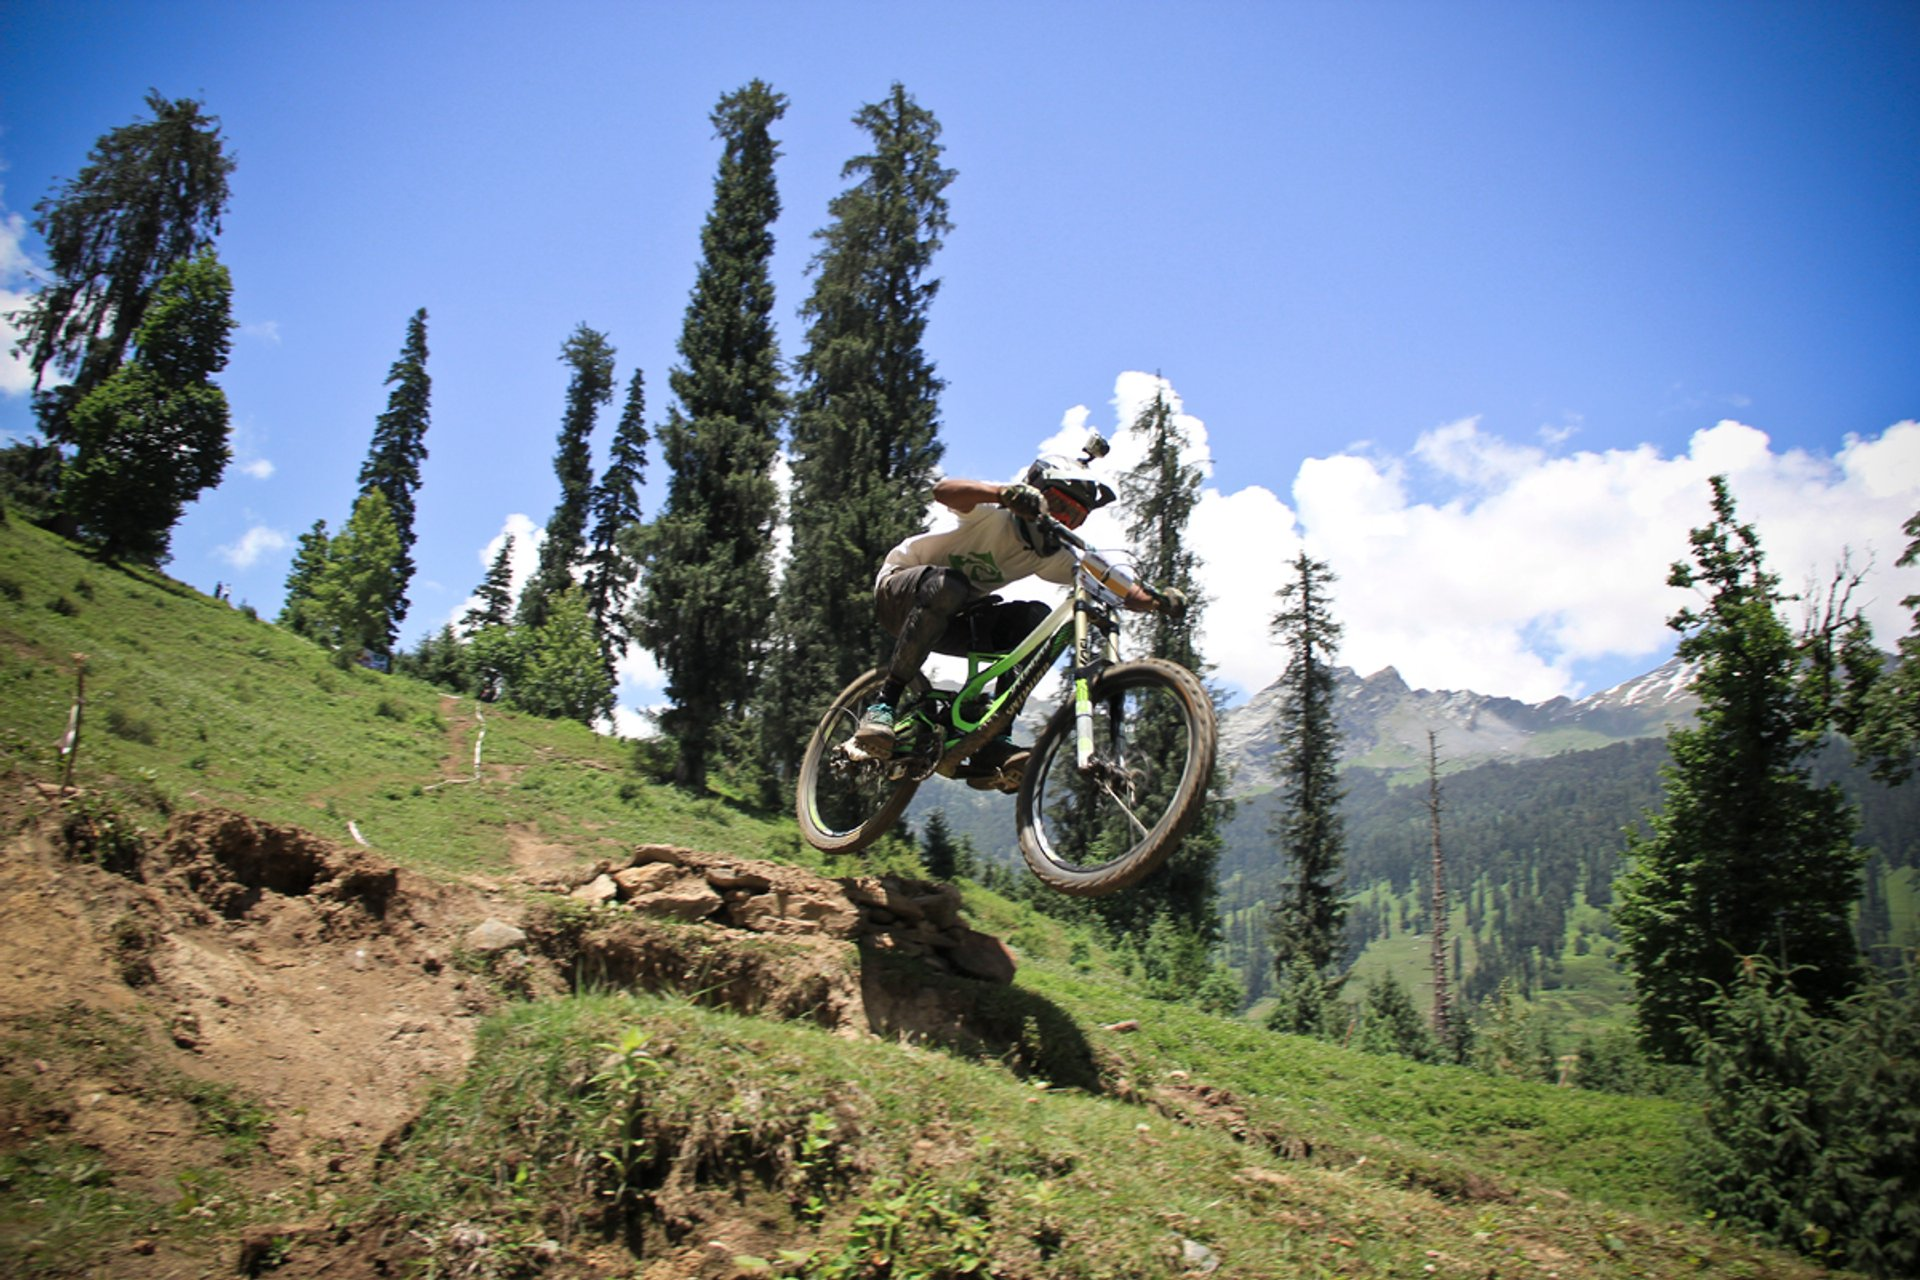 Himalayan Mountain Bike Festival in India 2020 - Best Time